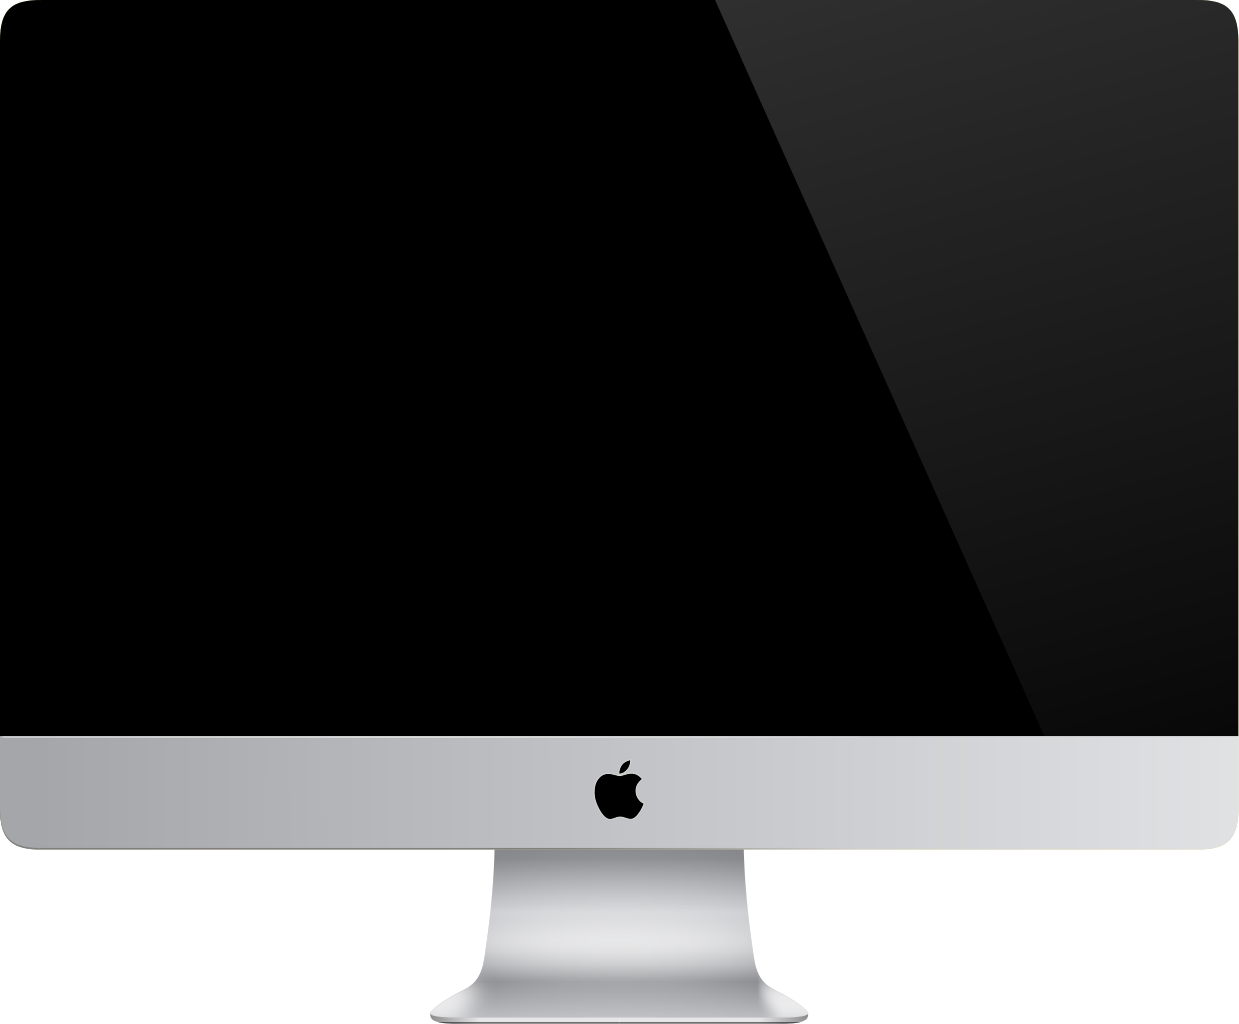 File:IMac vector.svg